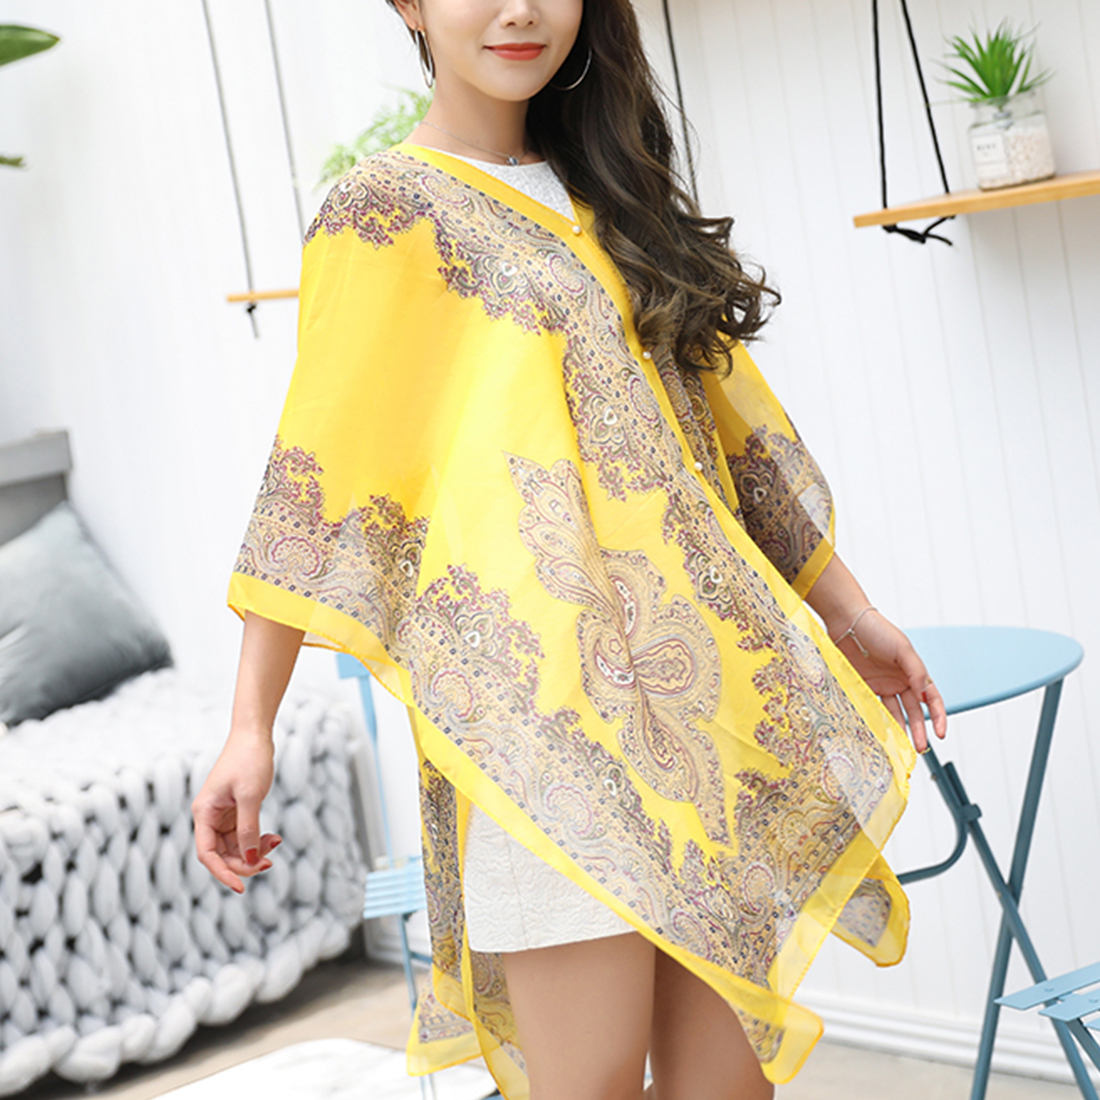 Fashion Style Women Scarf Chiffon Print Shawls Clothes for Lady Female Wrap Long Summer Scarf Fully Functional